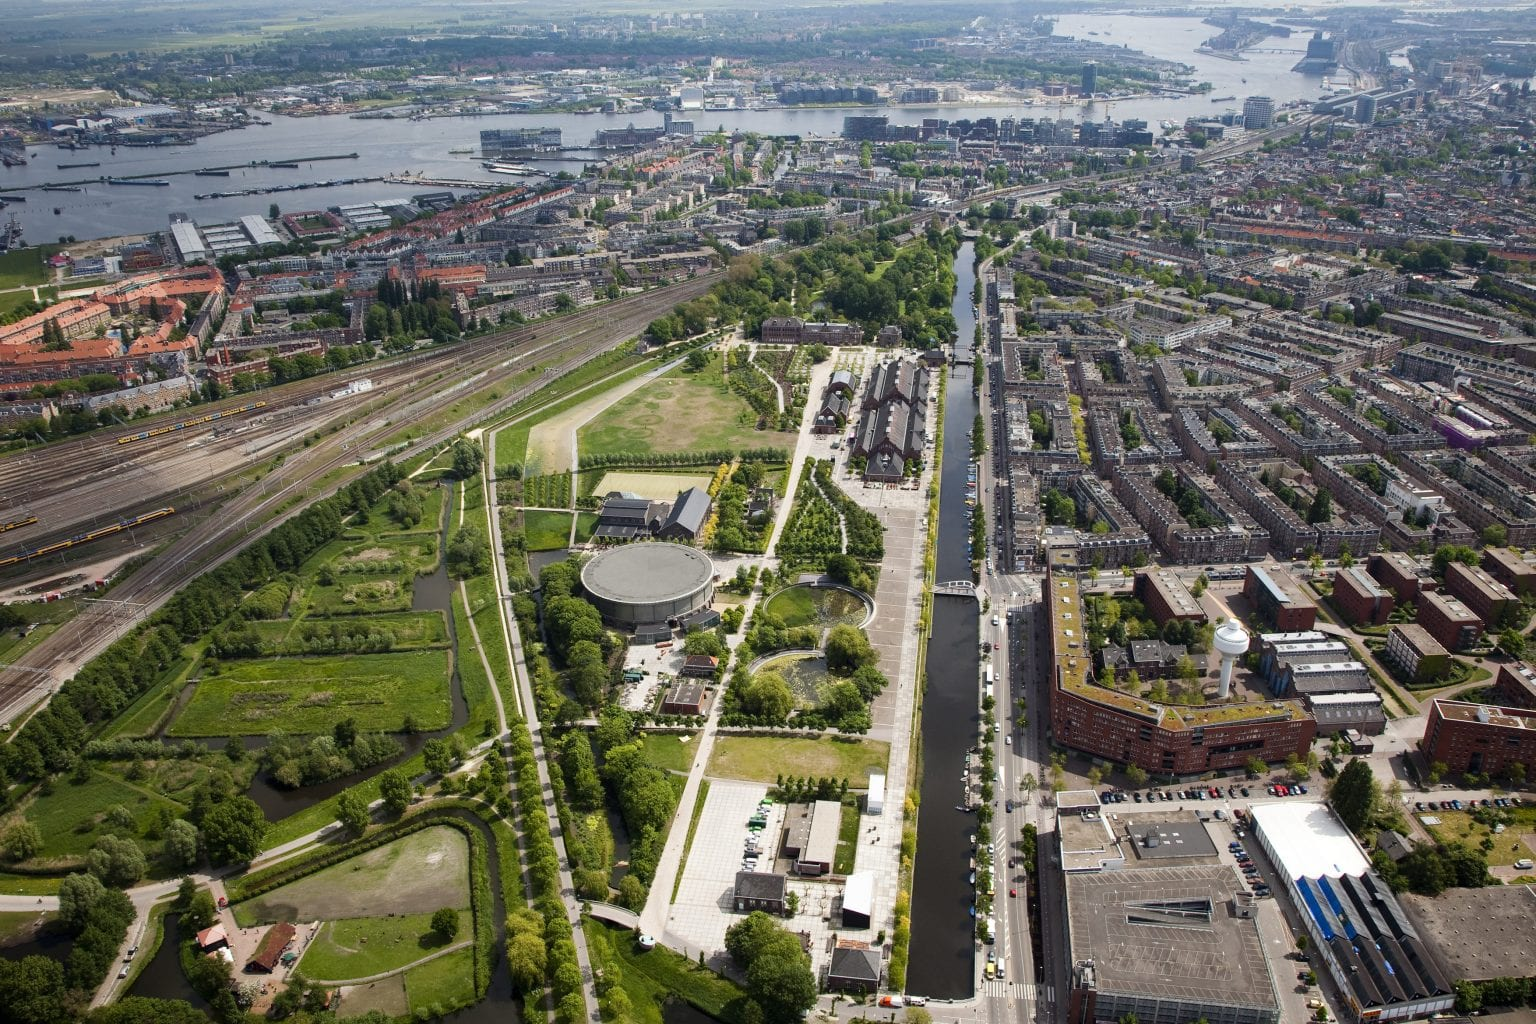 Westergasfabriek from above